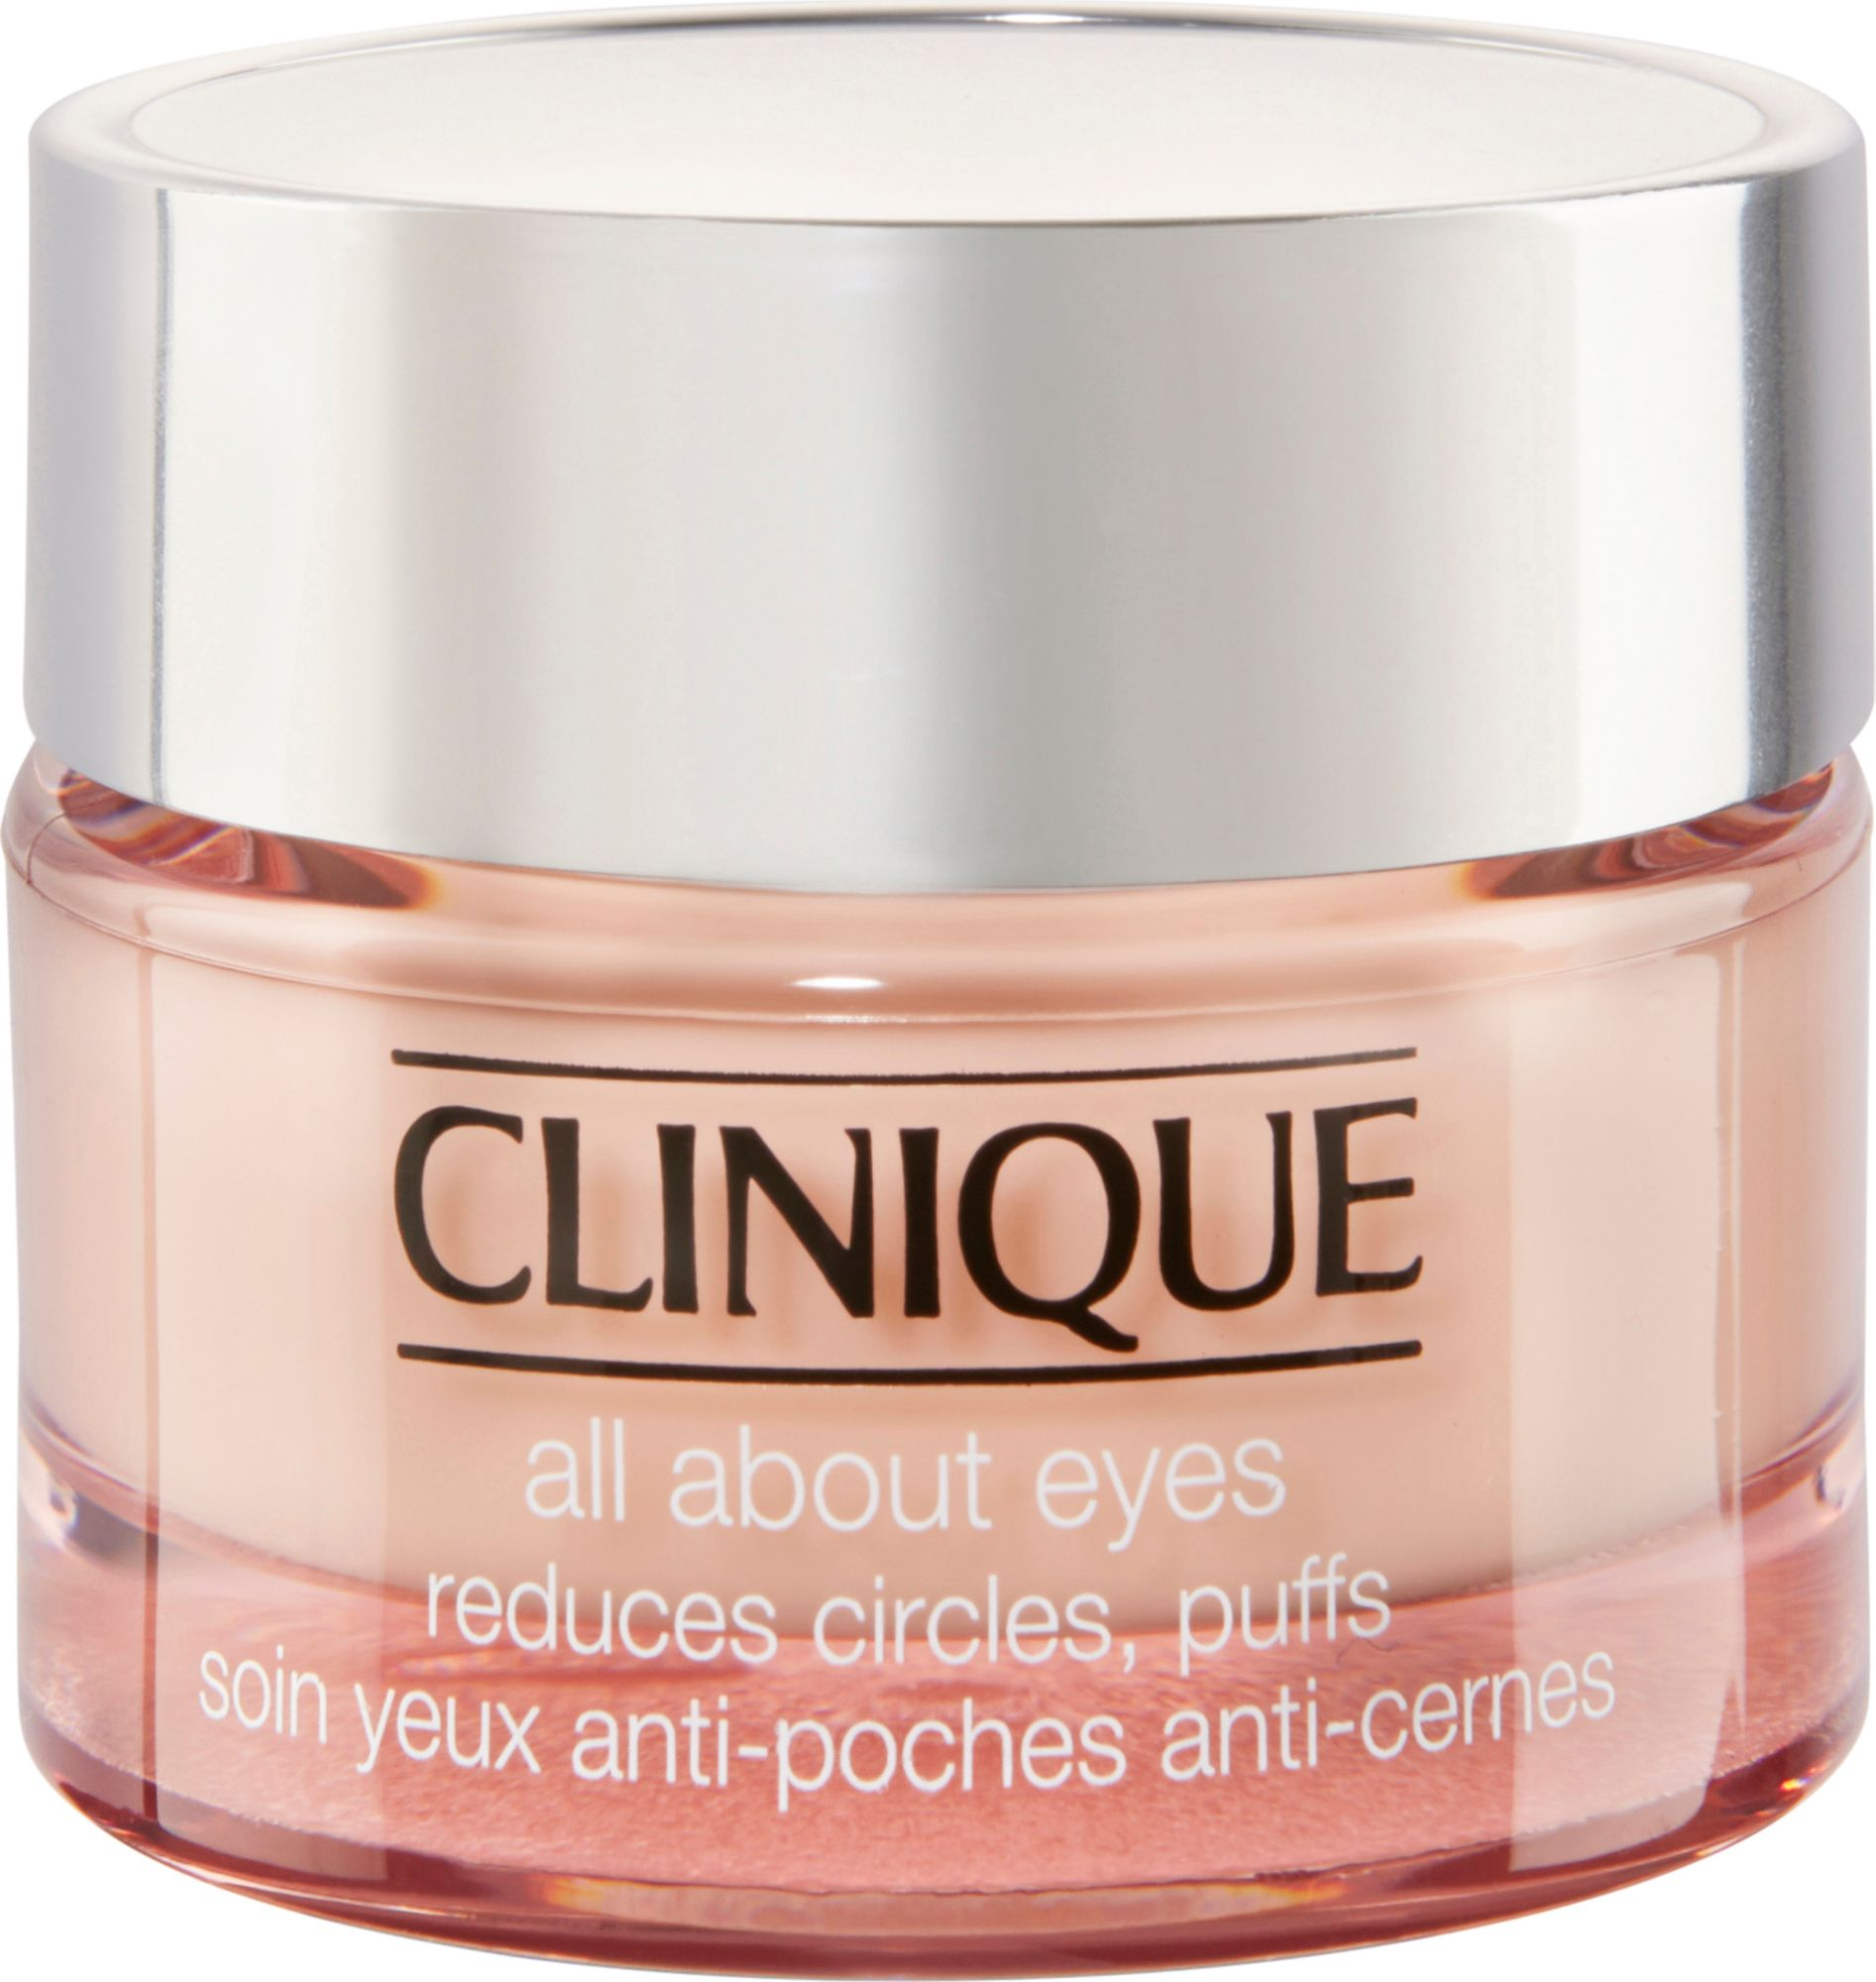 CLINIQUE Clinique, »All About Eyes«, Augengel